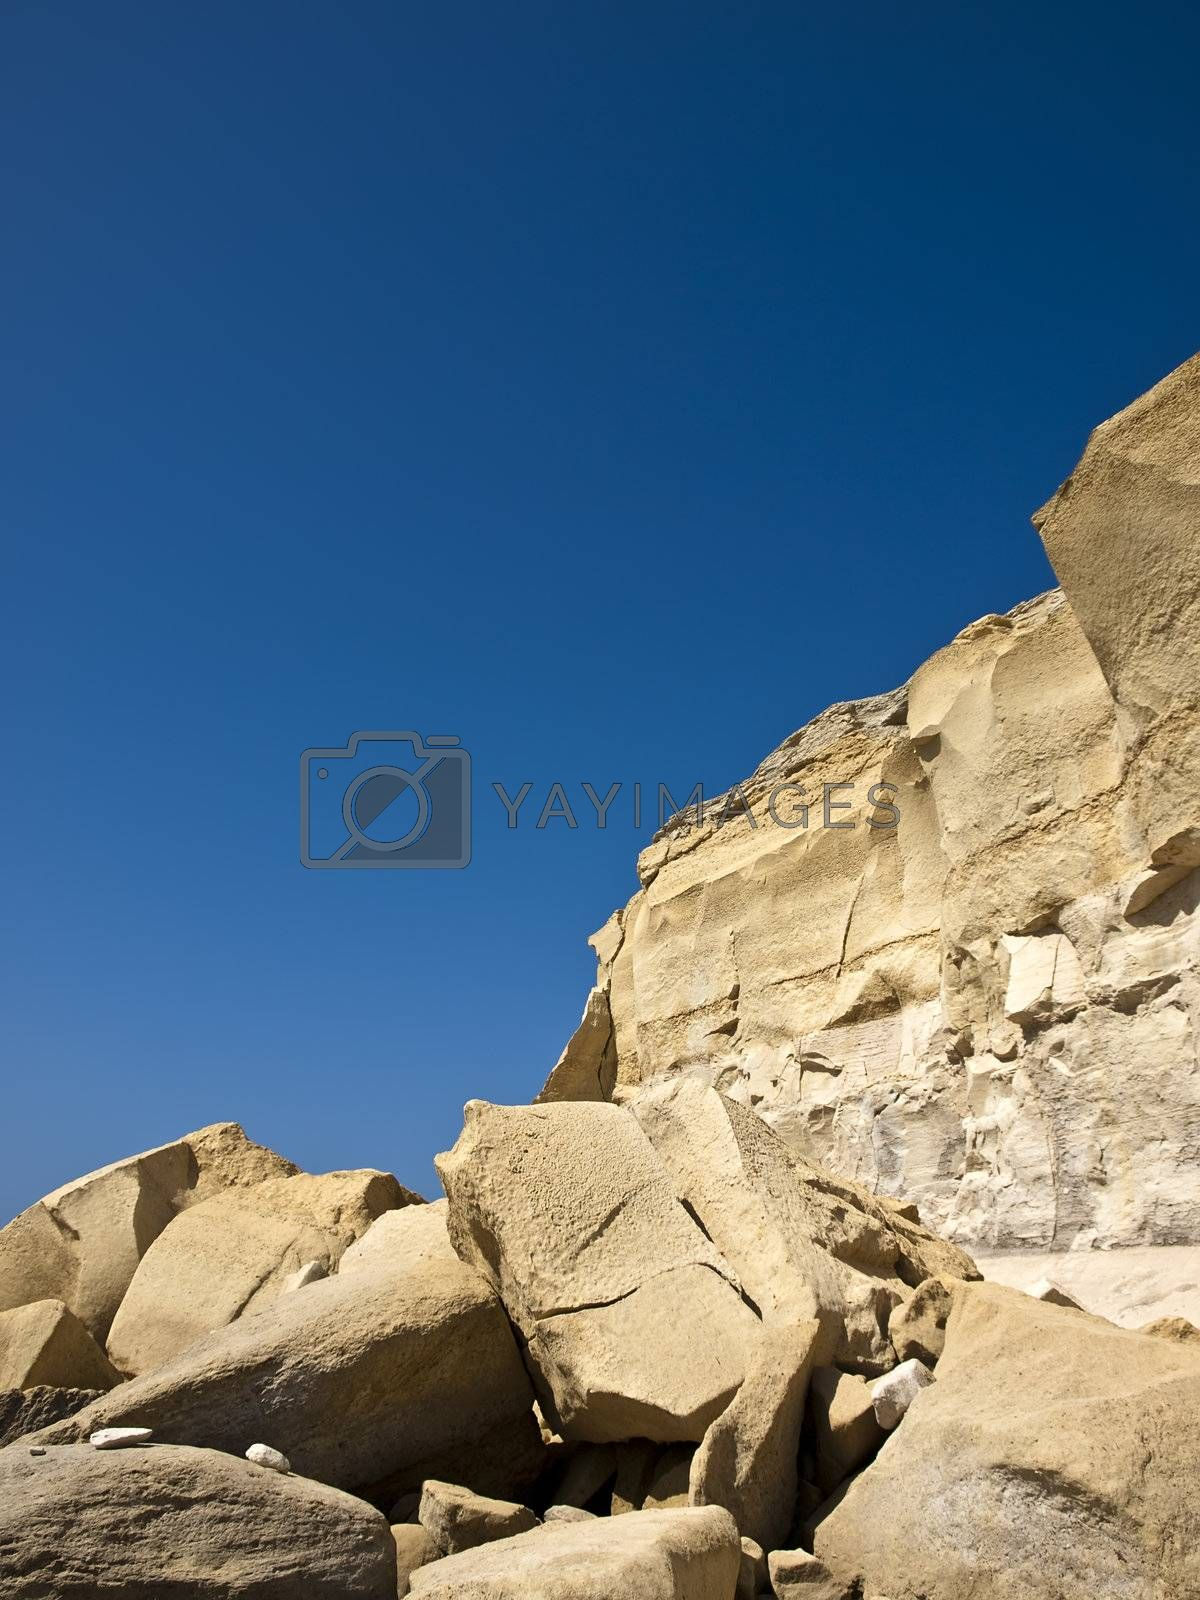 Royalty free image of Sandstone Erosion by PhotoWorks